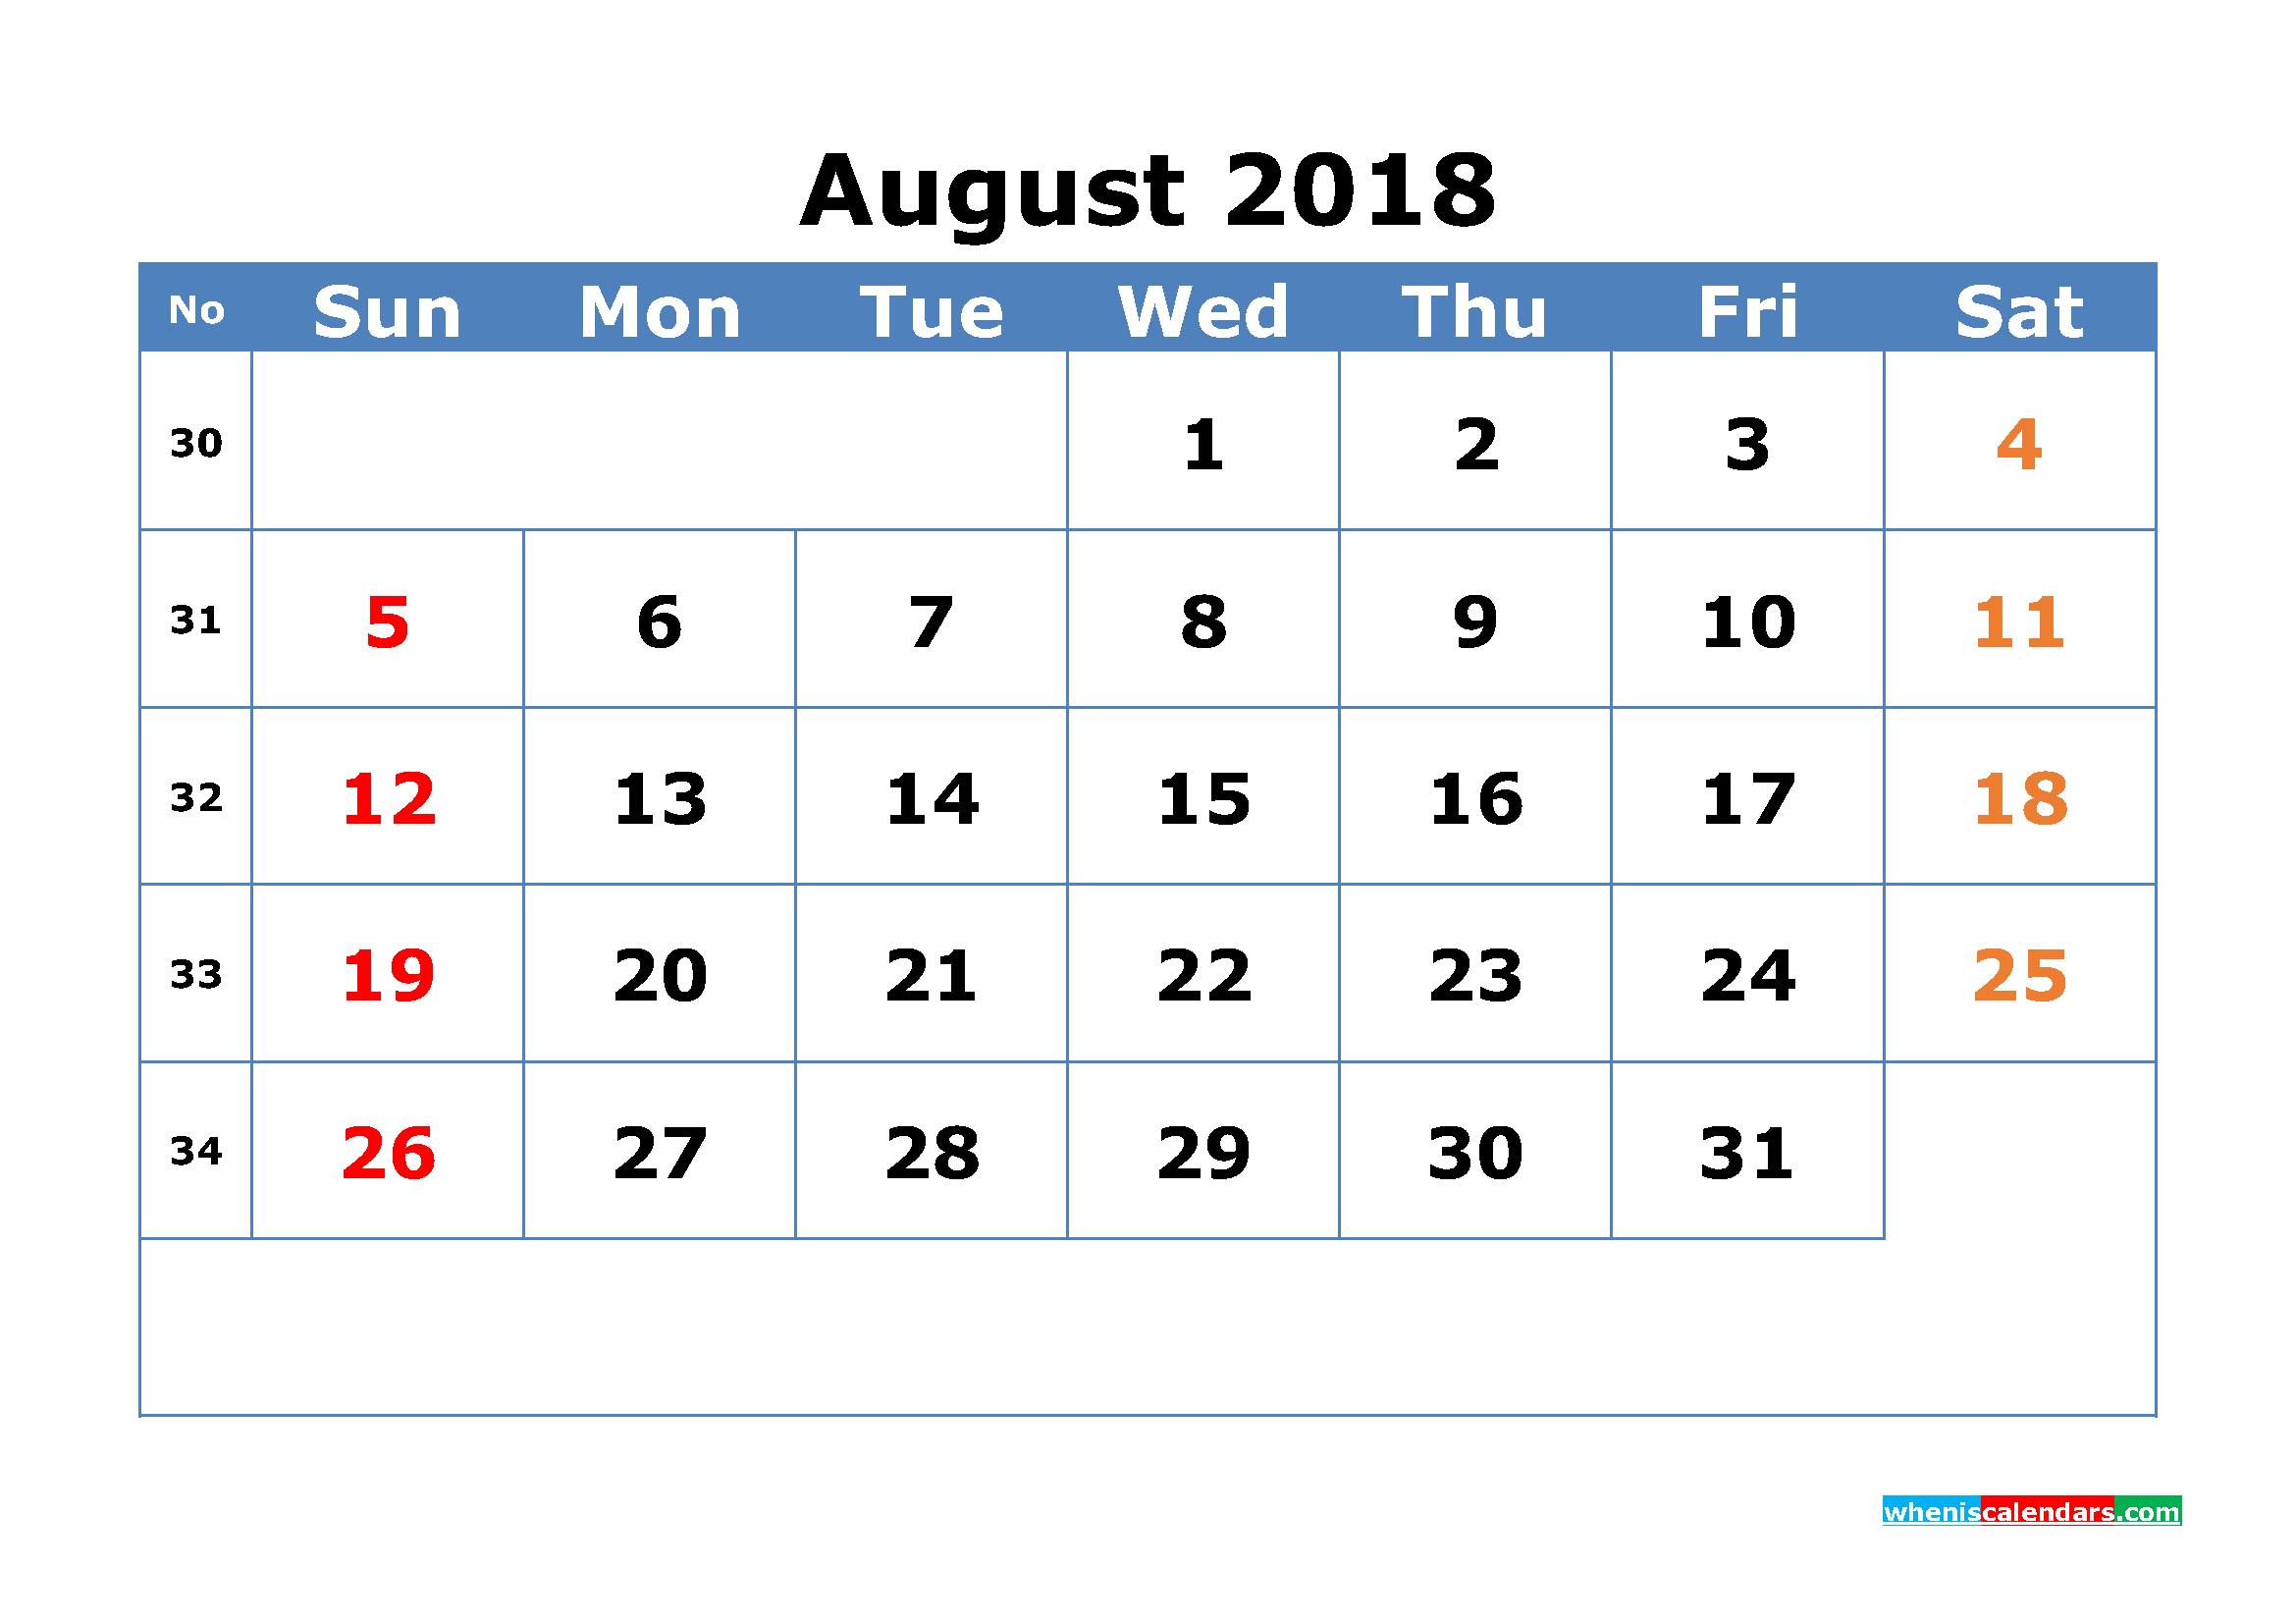 Printable Calendar August 2018 with Week Numbers Pdf, Image